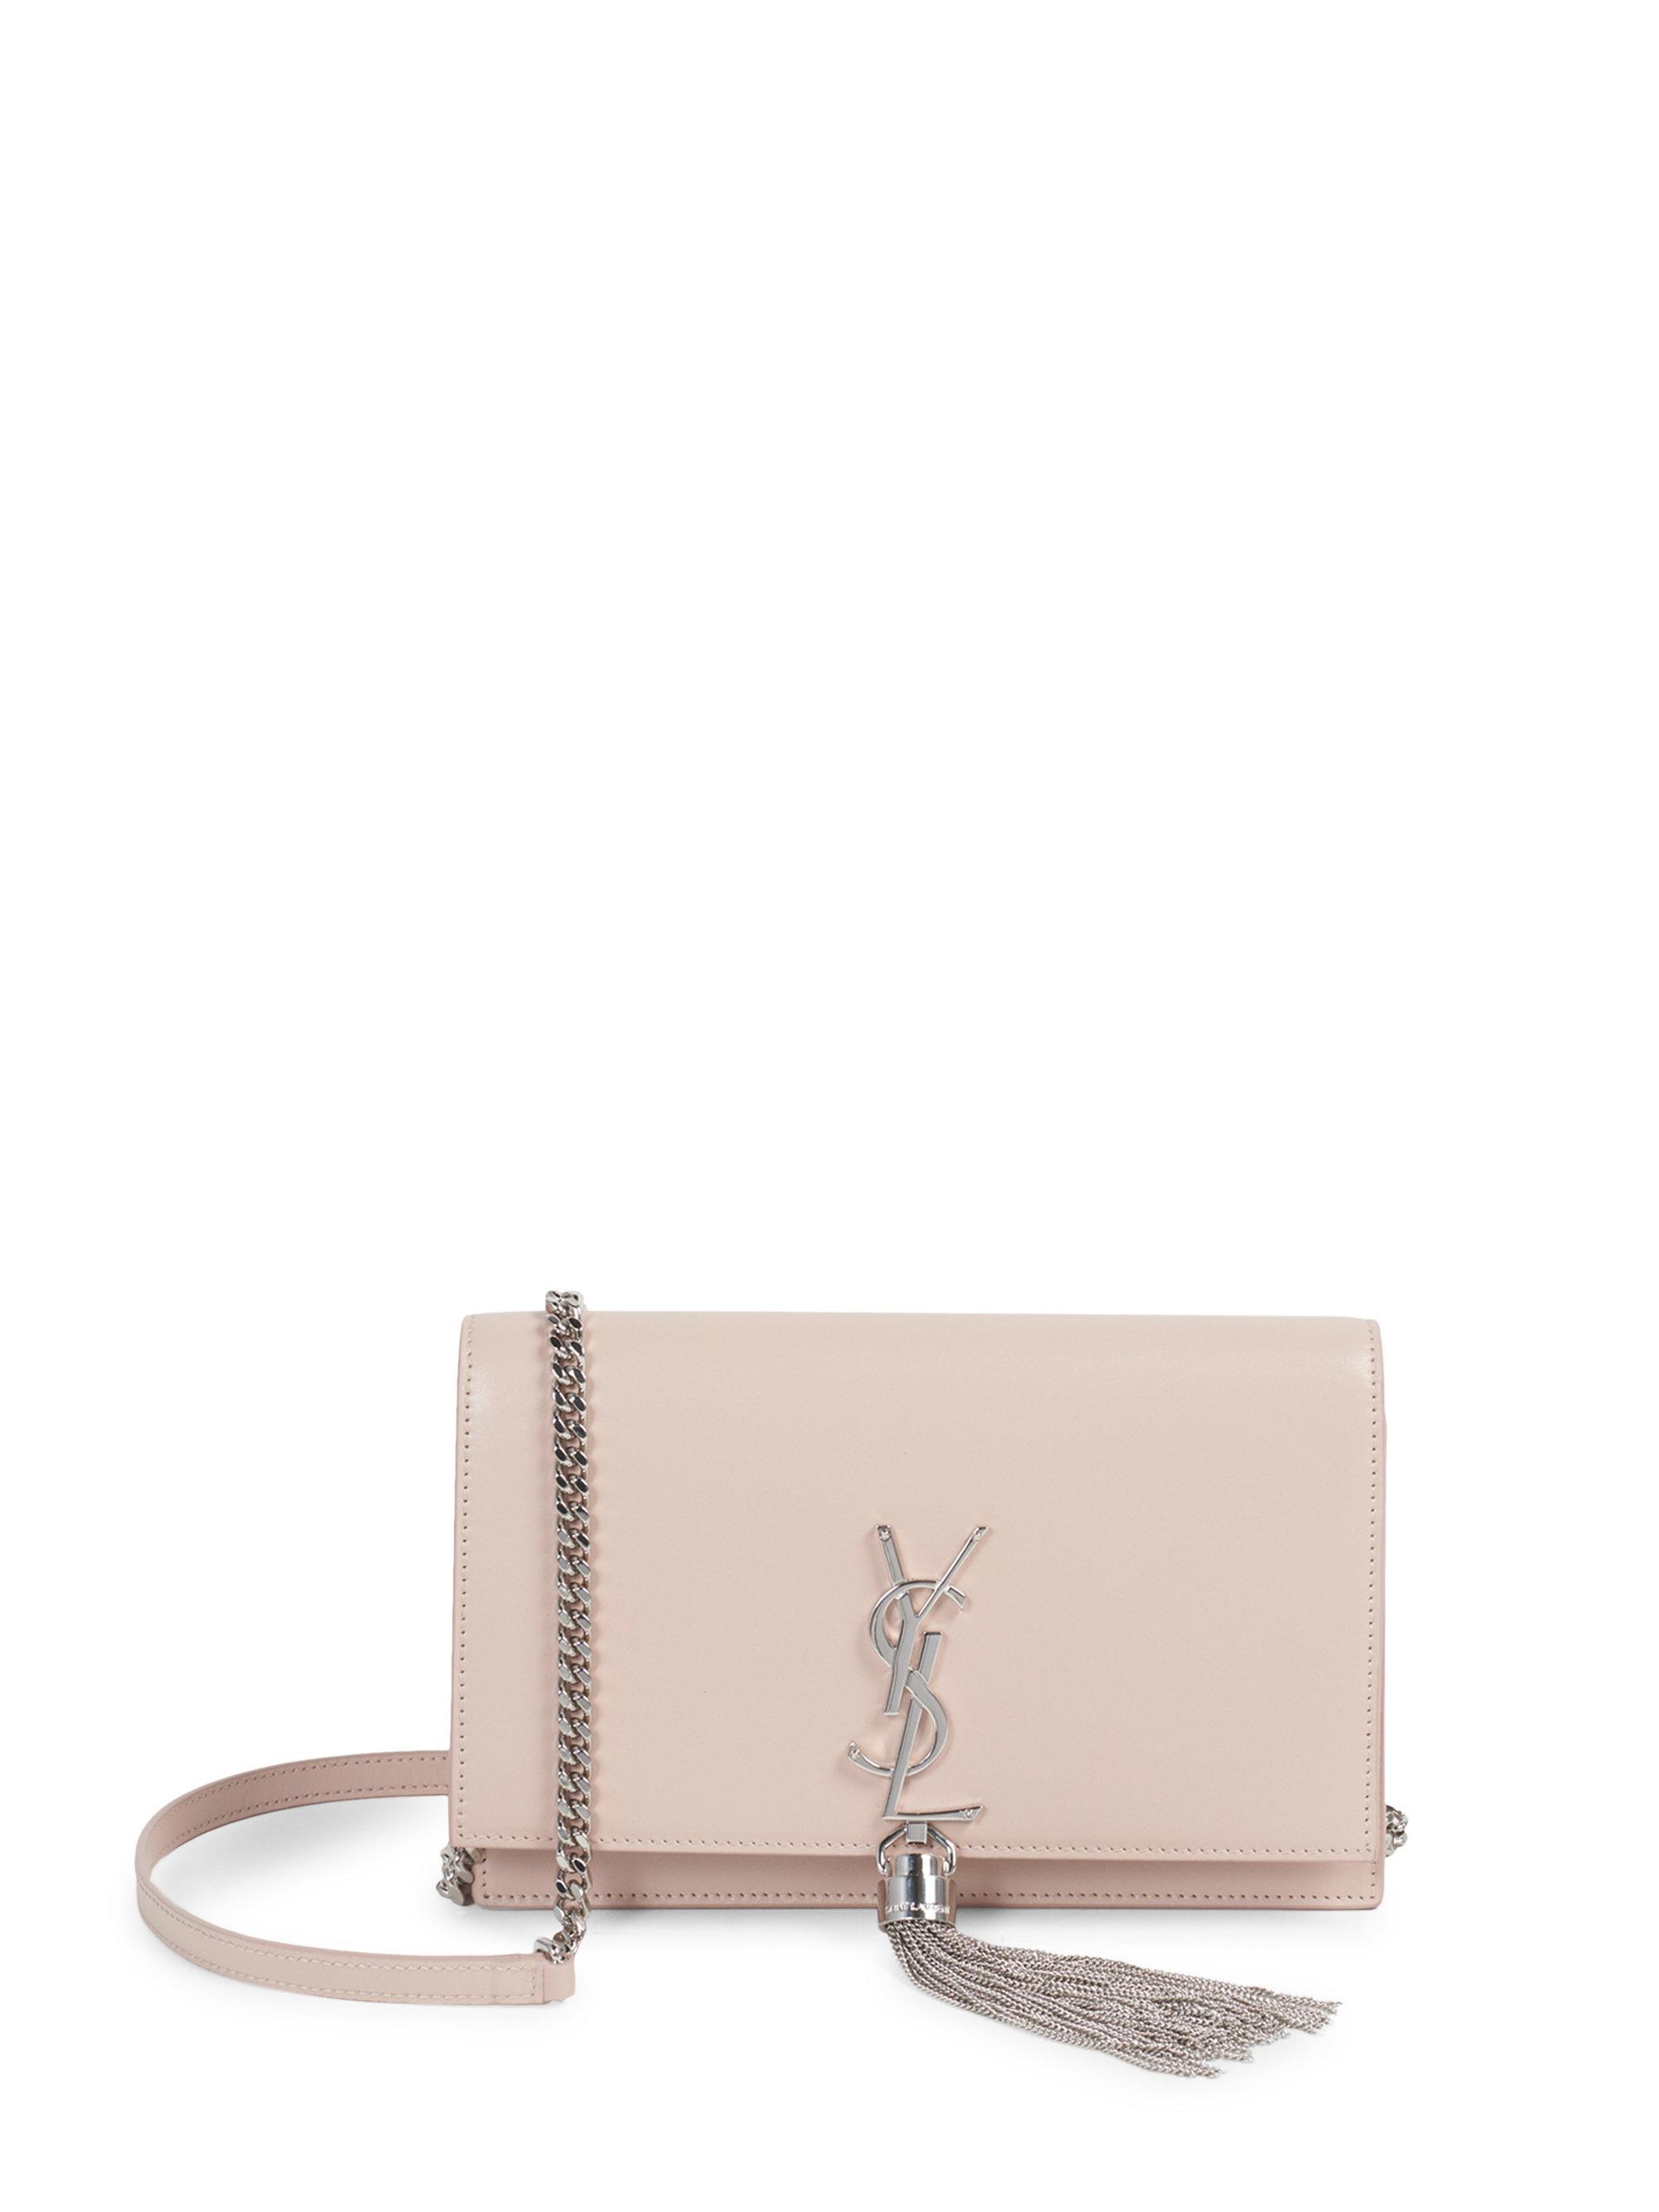 Lyst - Saint Laurent Kate Smooth Leather Tassel Chain Wallet in Pink 6cb2c7cc66ee9